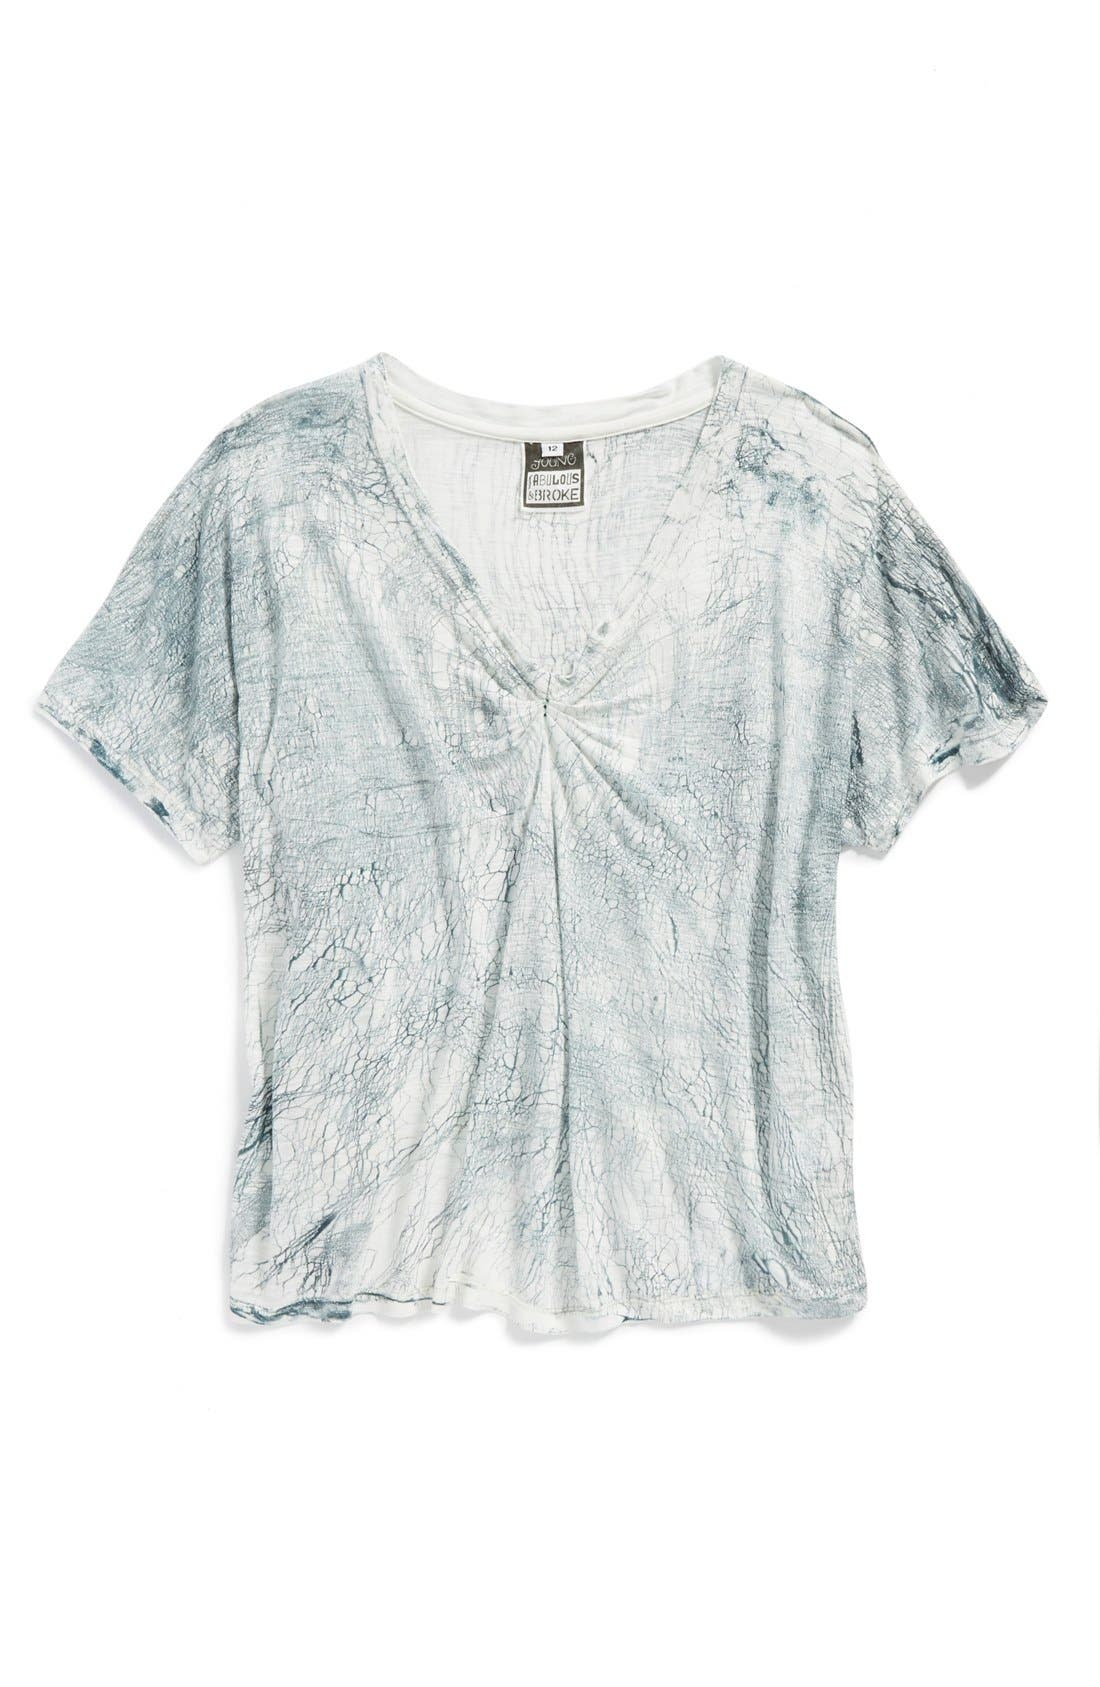 Alternate Image 1 Selected - Young, Fabulous & Broke 'Jerrica' Slouchy V-Neck Top (Little Girls & Big Girls)